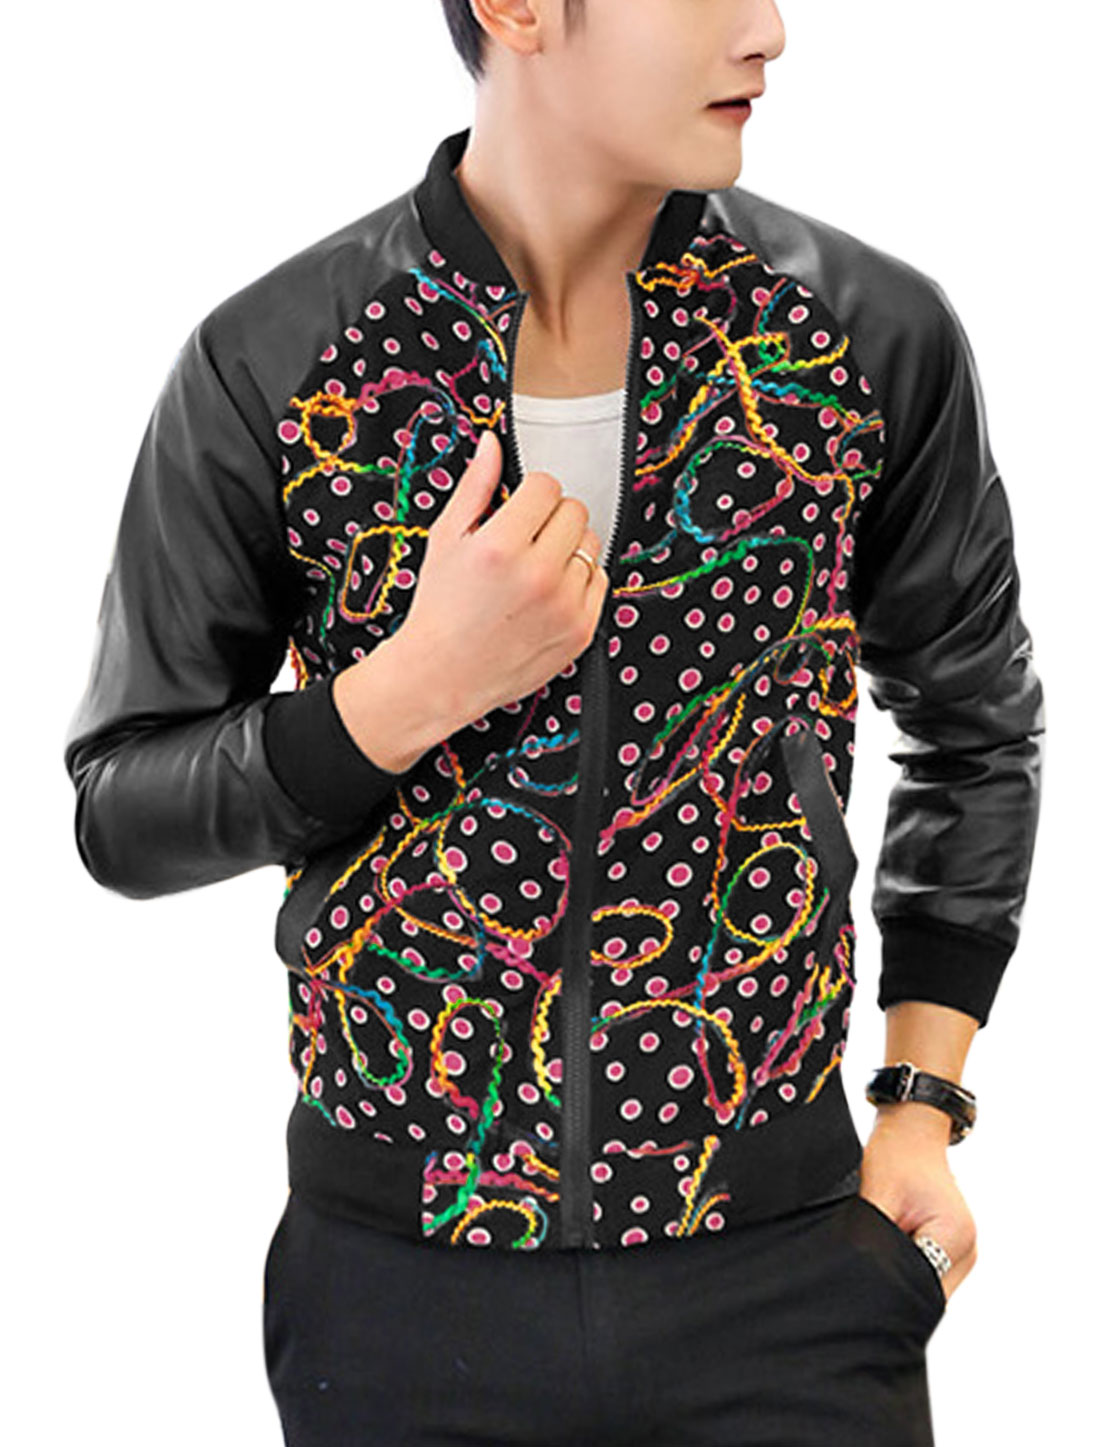 Men Raglan Design Ribbed Trim Full Zipper Contrast Spot Print Jacket Black M